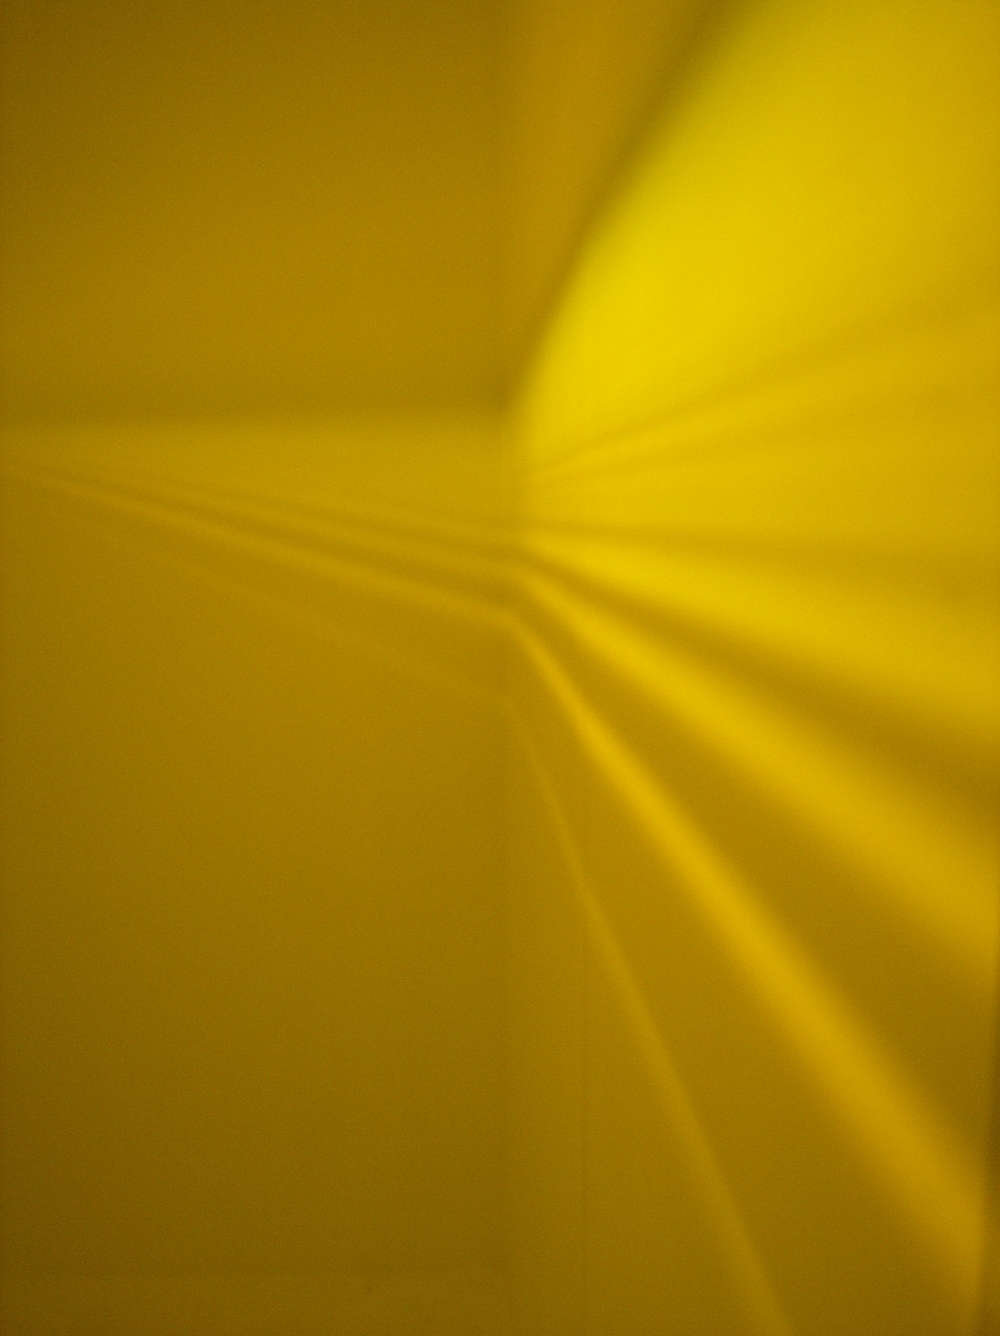 4. Yellow Chamber 1 (External View), Mixed Media Installation, 2007.jpg